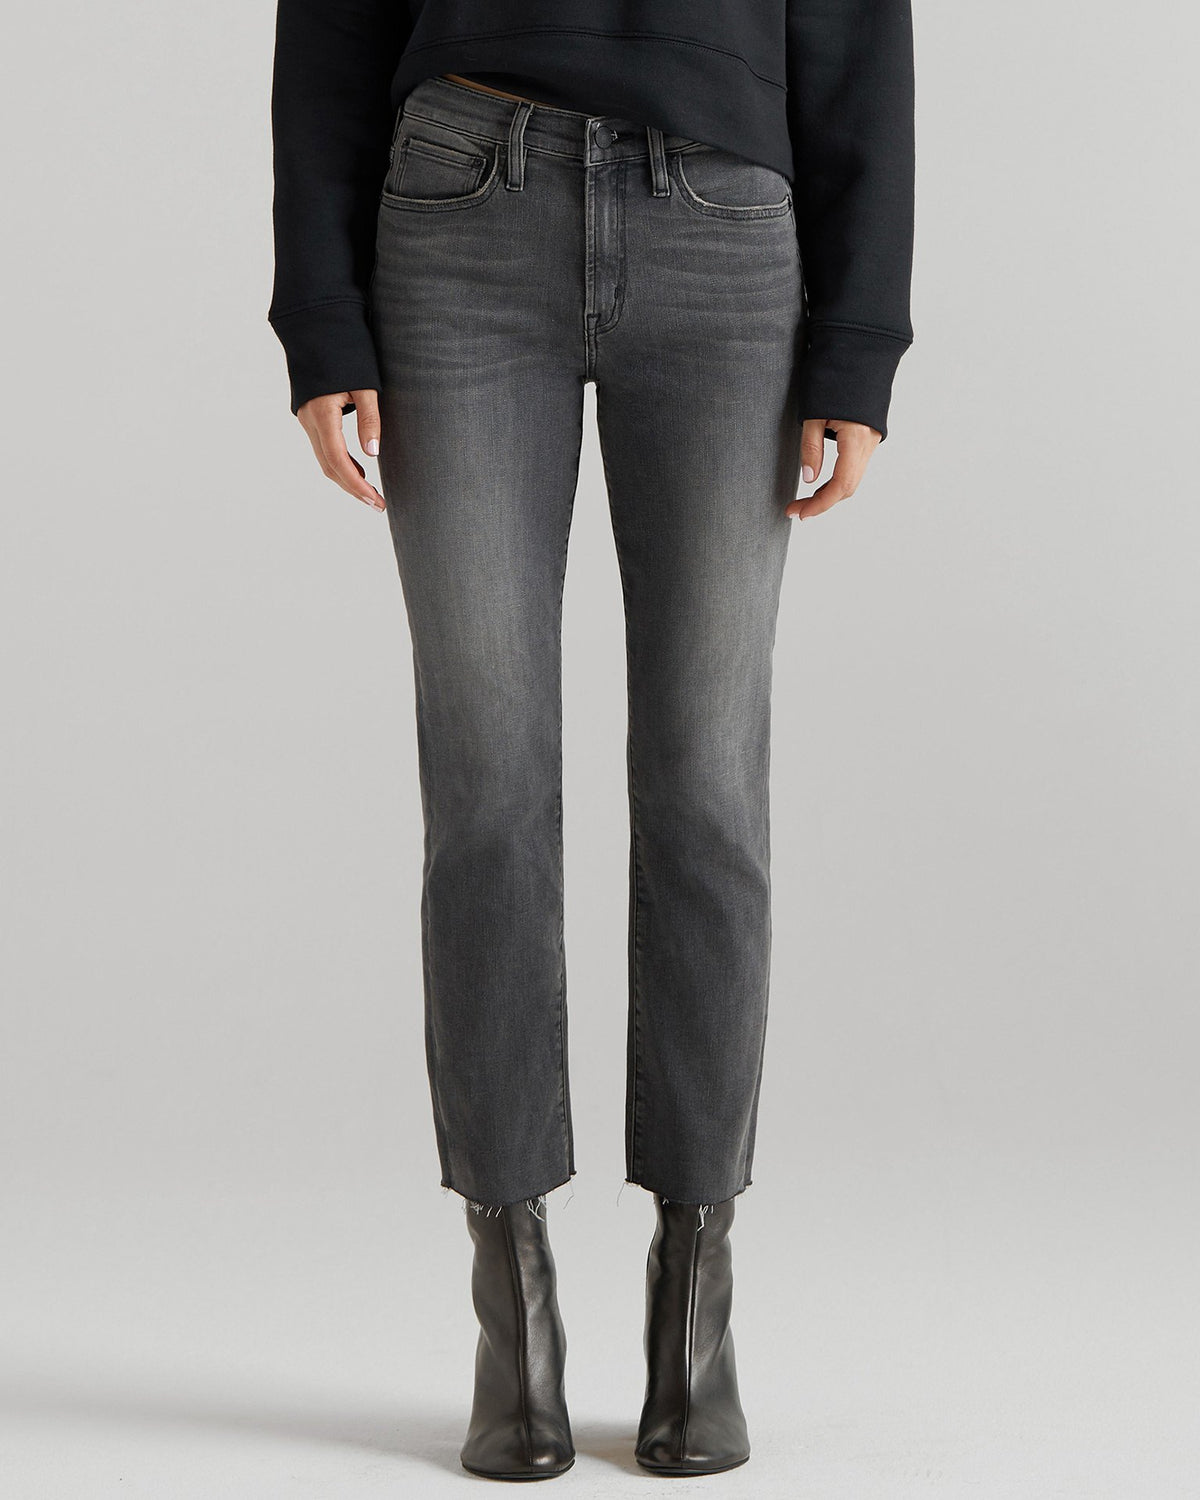 Edwin Denim Washed Black / 24 Bree in Washed Black